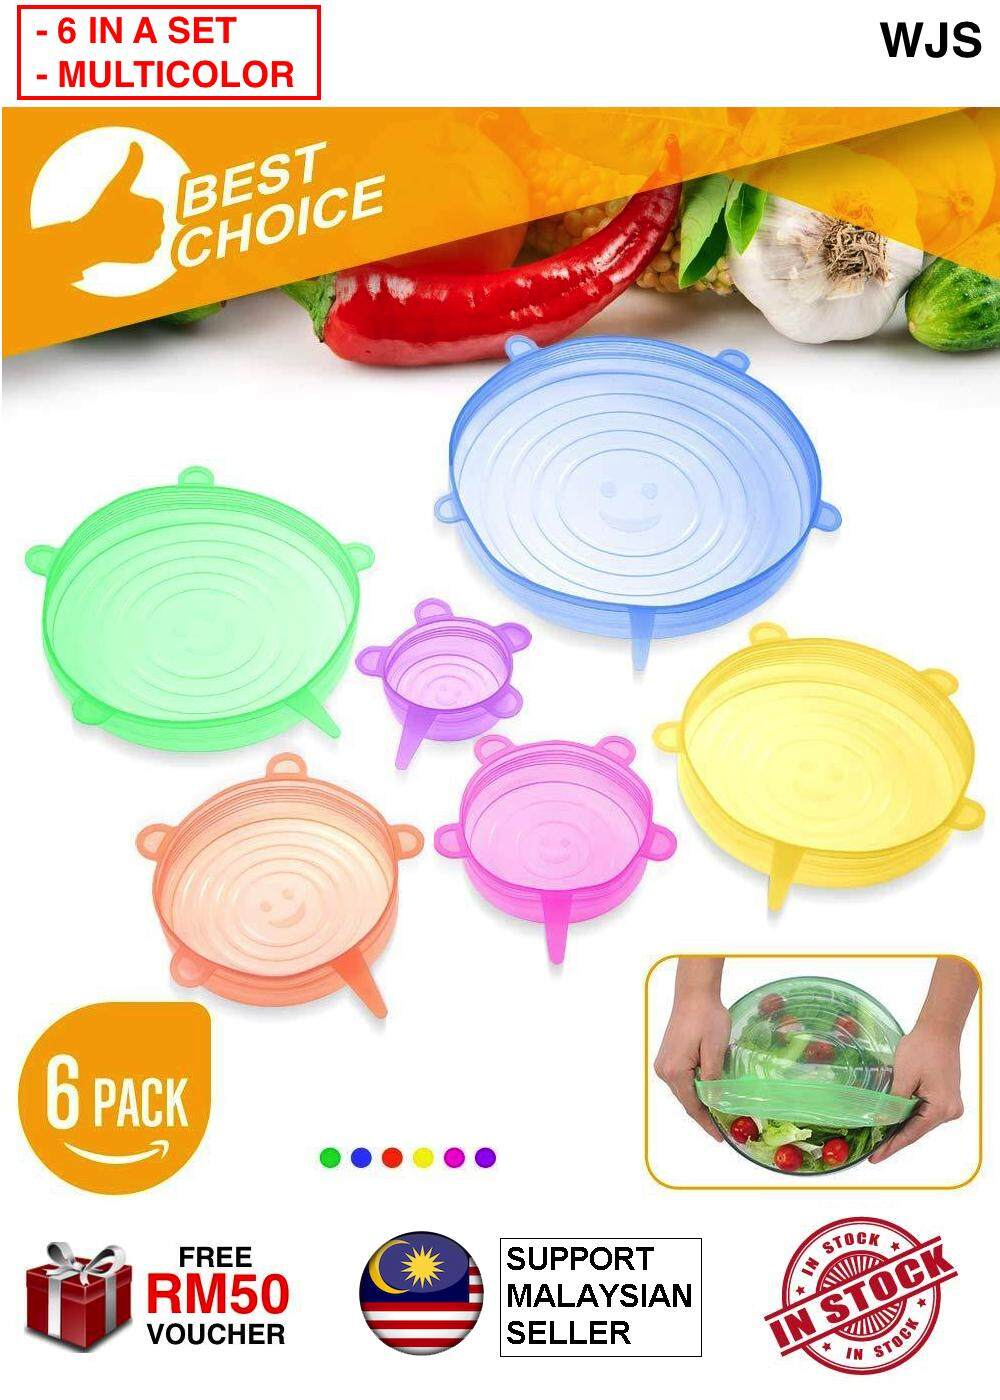 (SEAL SUPER TIGHT) WJS 6pcs 6 pcs 6 in 1 Silicone Food Cover Kitchen Reusable Silicone Stretch Seal Lid Preservation Vacuum Food Storage Bowl Cover Magic Cube MULTICOLOR [FREE RM 50 VOUCHER]